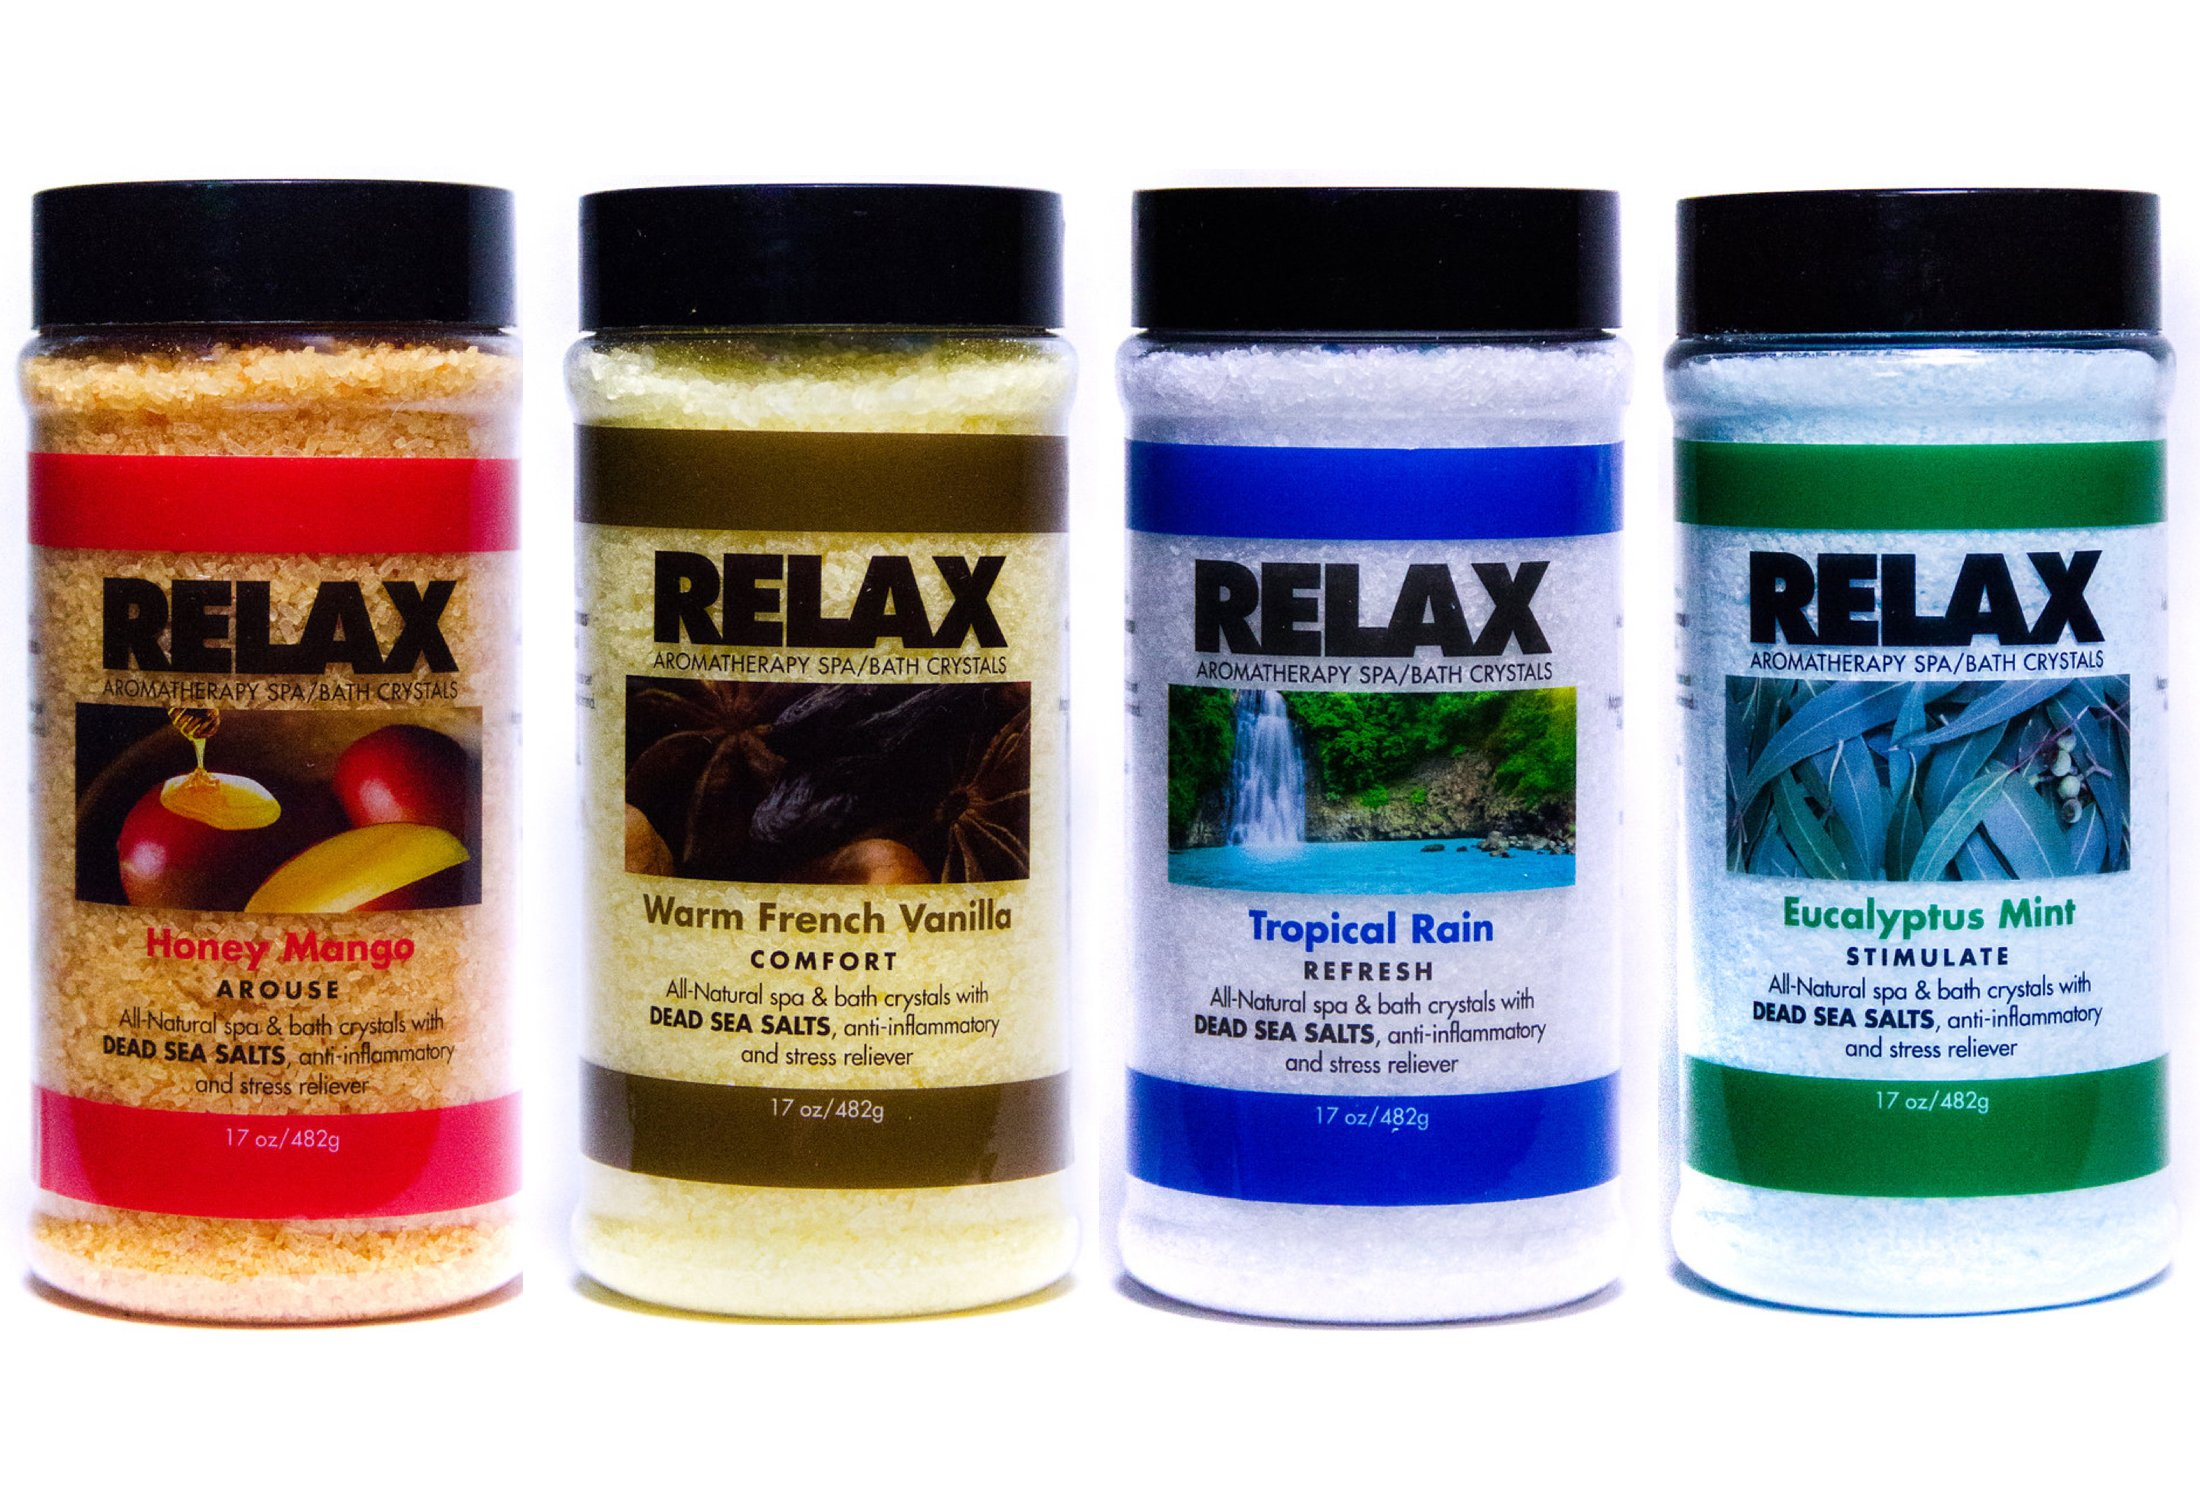 Original Relax Aromatherapy Best Bath Salts, Pack of 4, 17 Ounce Bottles, All Natural Epsom Mineral Salts, Safe for Hot Tubs, Spas, Baths, and Jacuzzi by Relax Spa & Bath